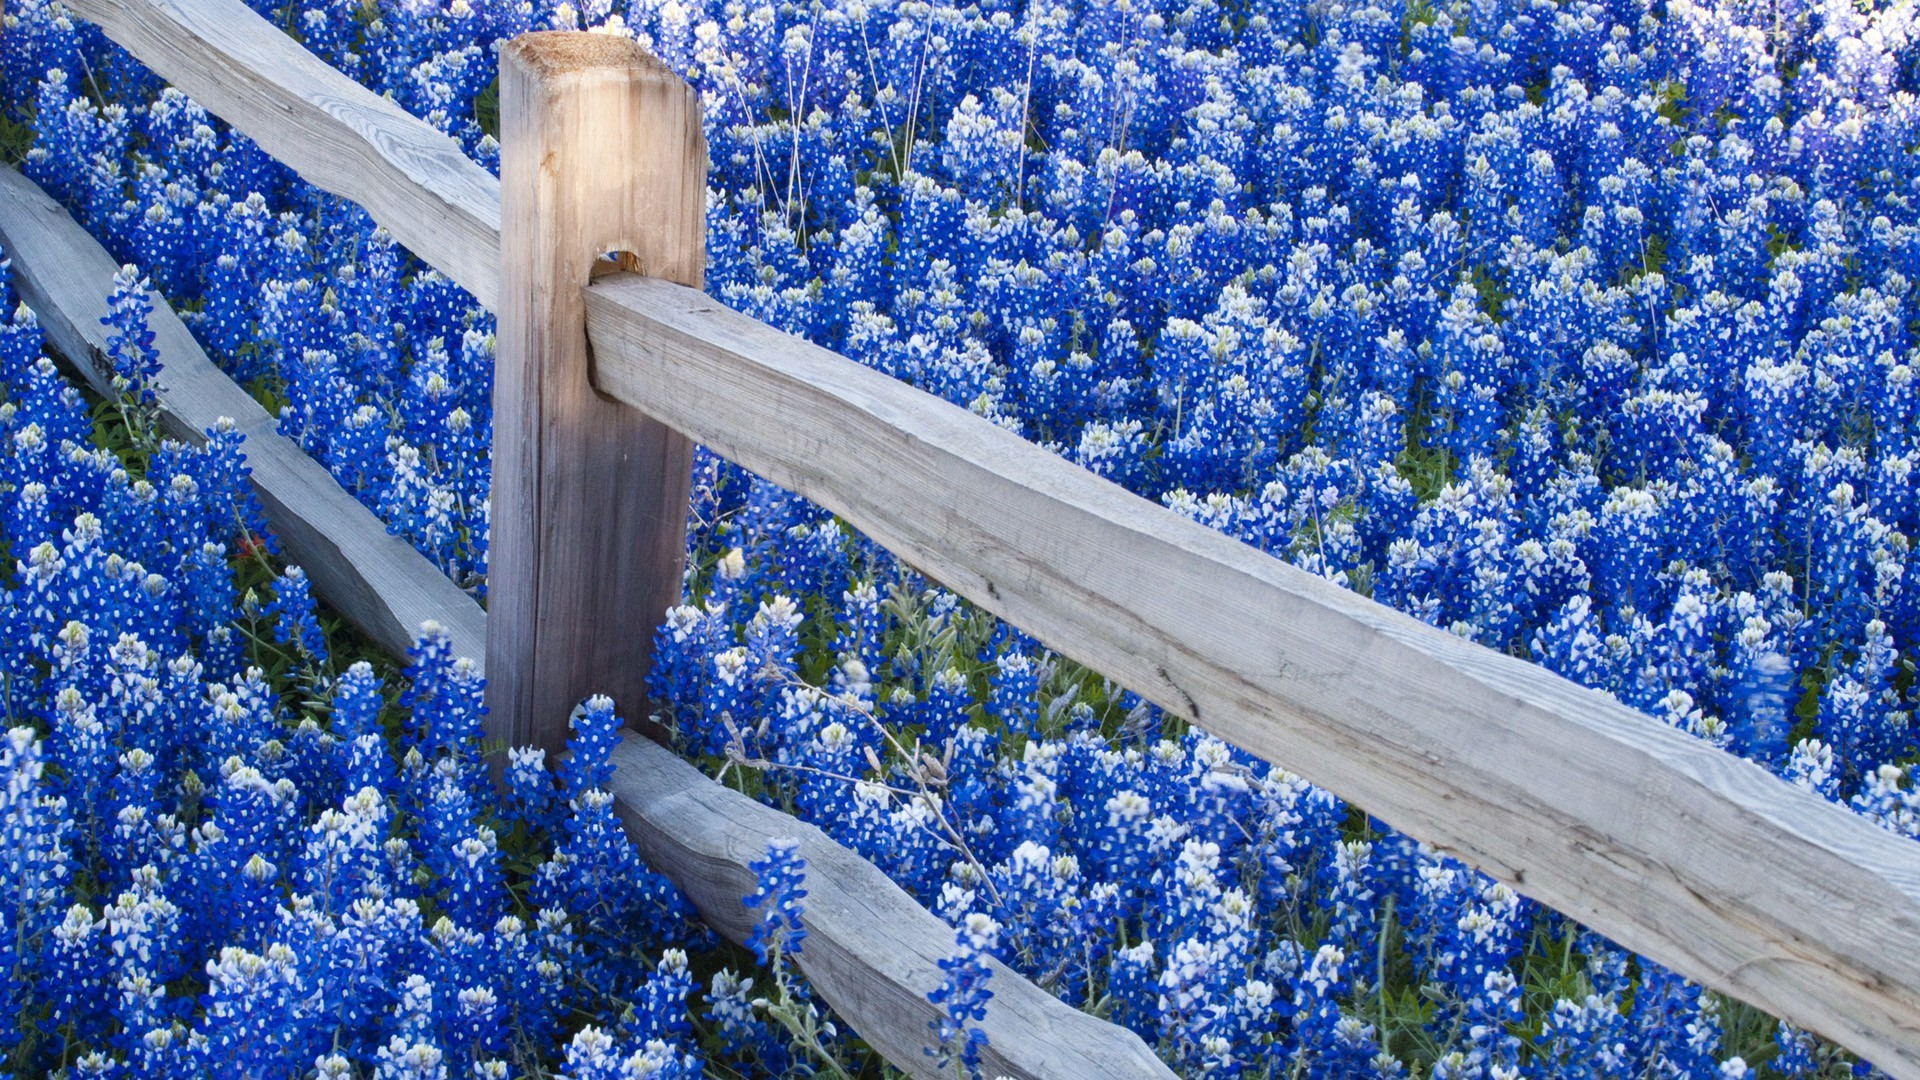 Res: 1920x1080, Blue Flowers Desktop Wallpaper 13 Hd Wallpaper